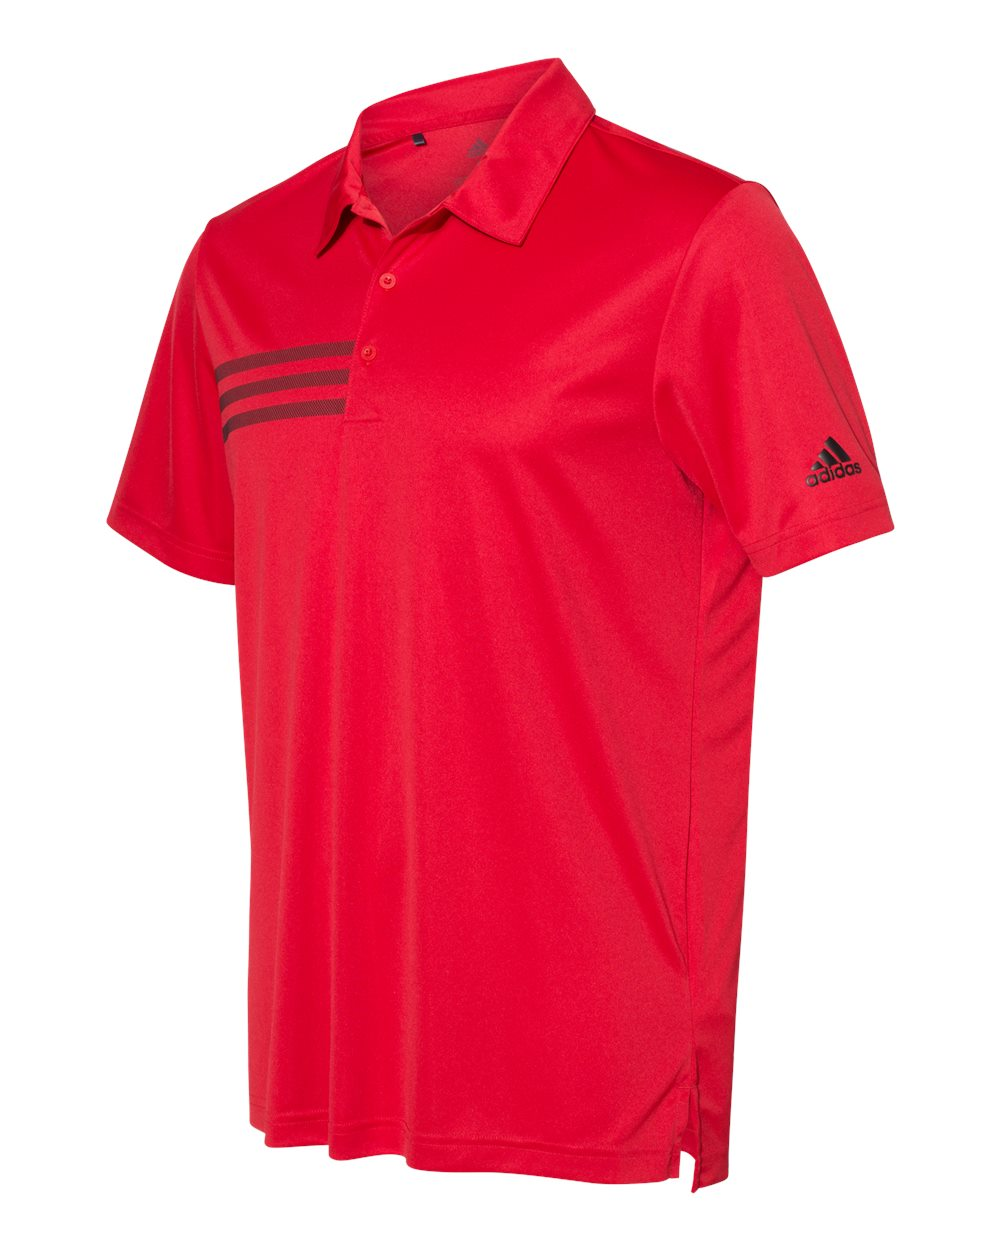 click to view Collegiate Red/ Black